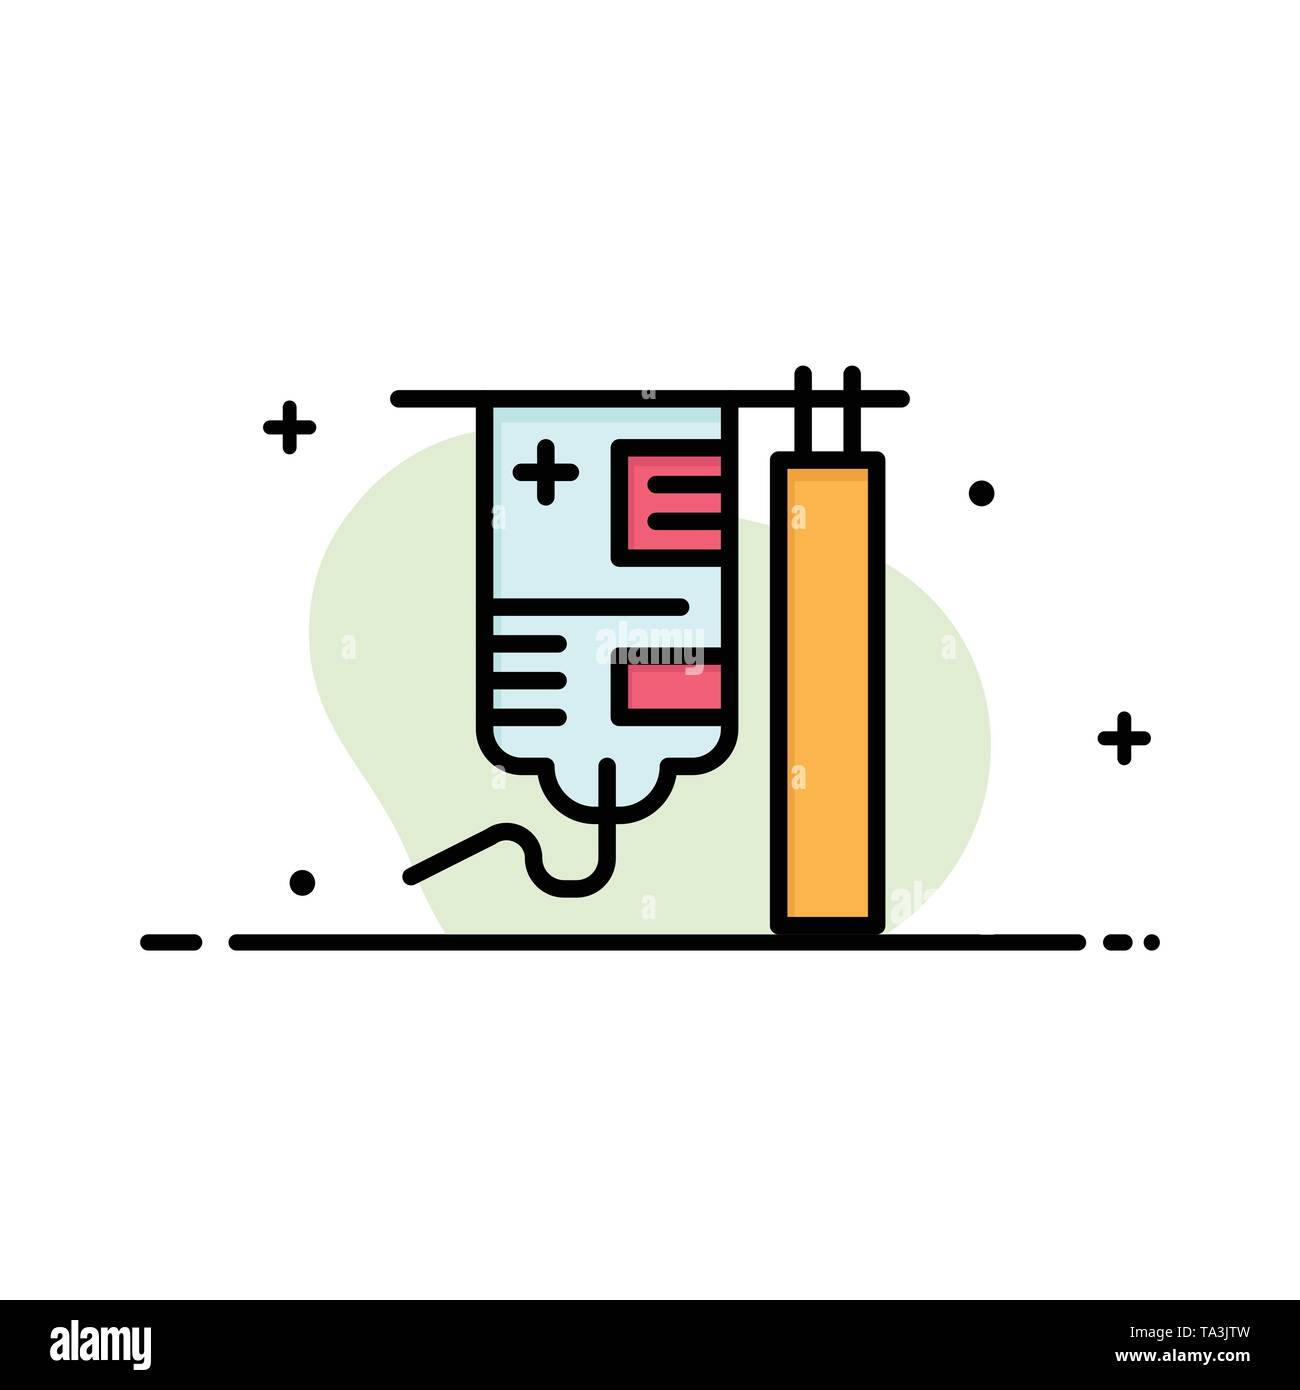 Drip, Hospital, Medical, Treatment  Business Flat Line Filled Icon Vector Banner Template - Stock Image